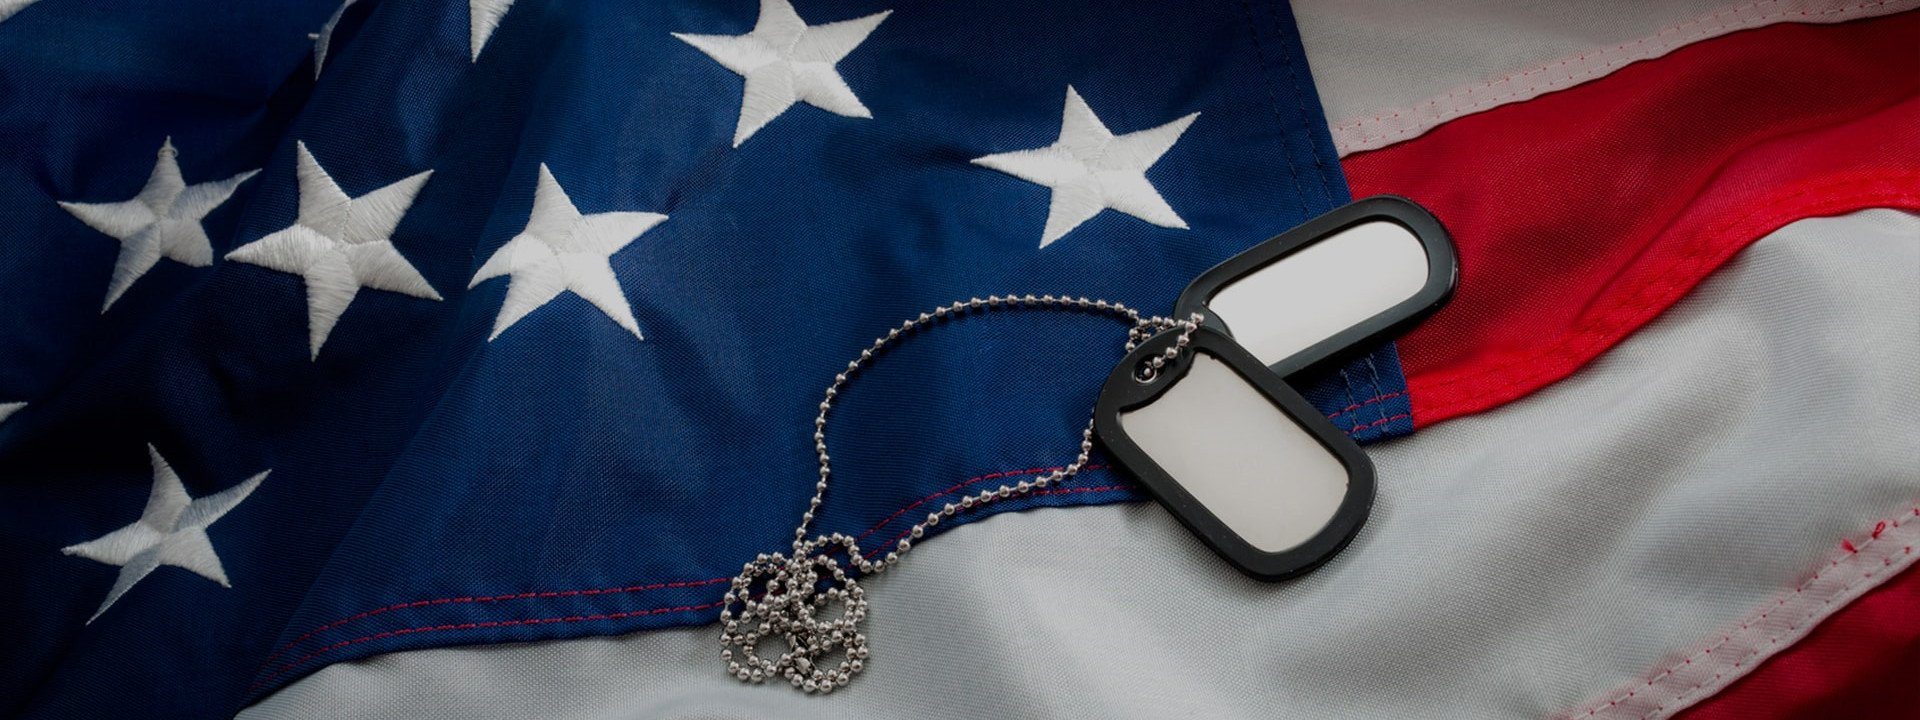 Services | American Heritage Cemetery & Funeral Home: Midland, Odessa, TX